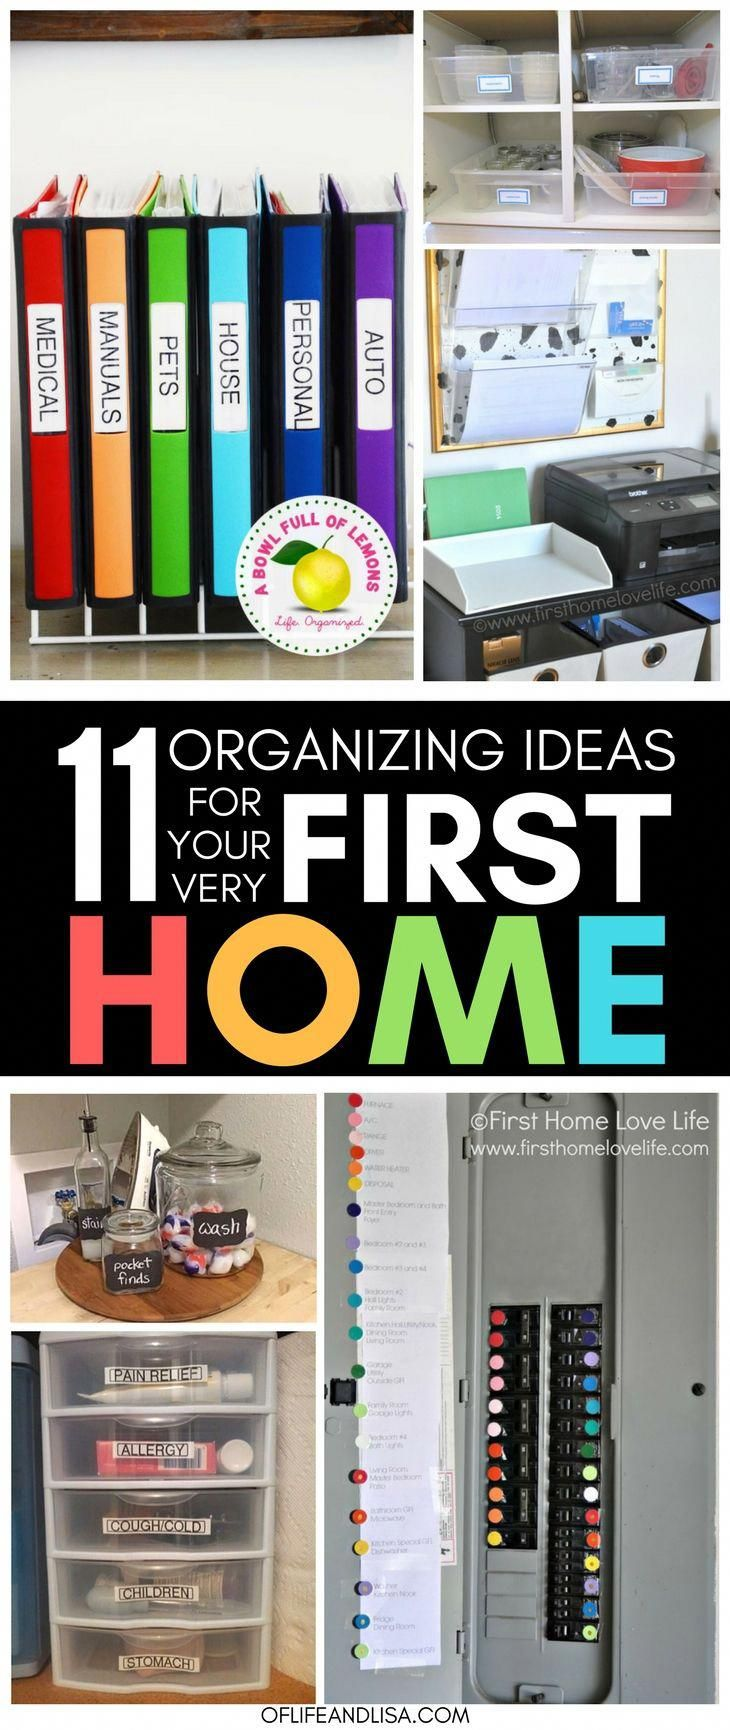 11 of the BEST Organizing Ideas for Your First Home #summerhomeorganization